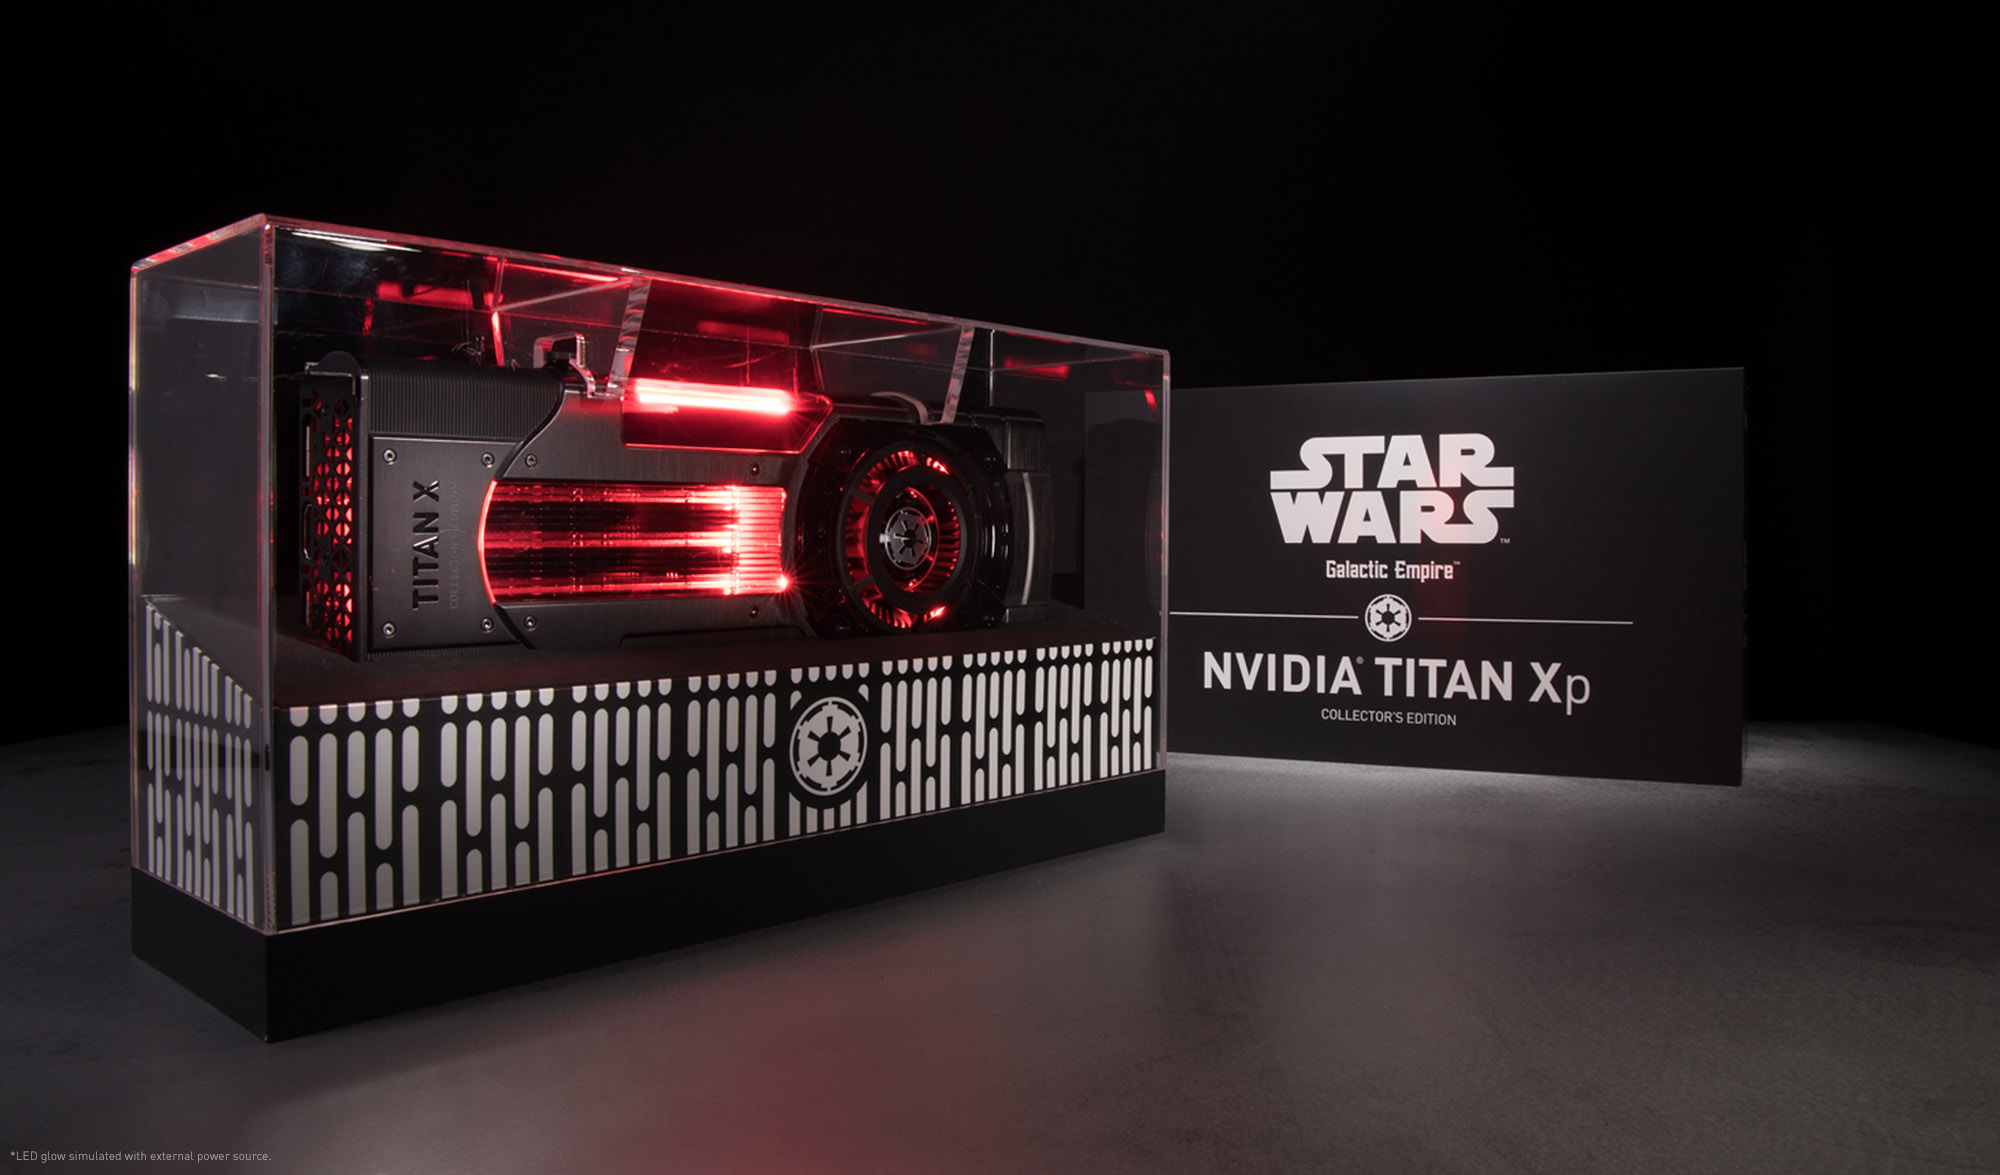 nvidia-titan-xp-ce-star-wars-galactic-empire-gallery-06.jpg